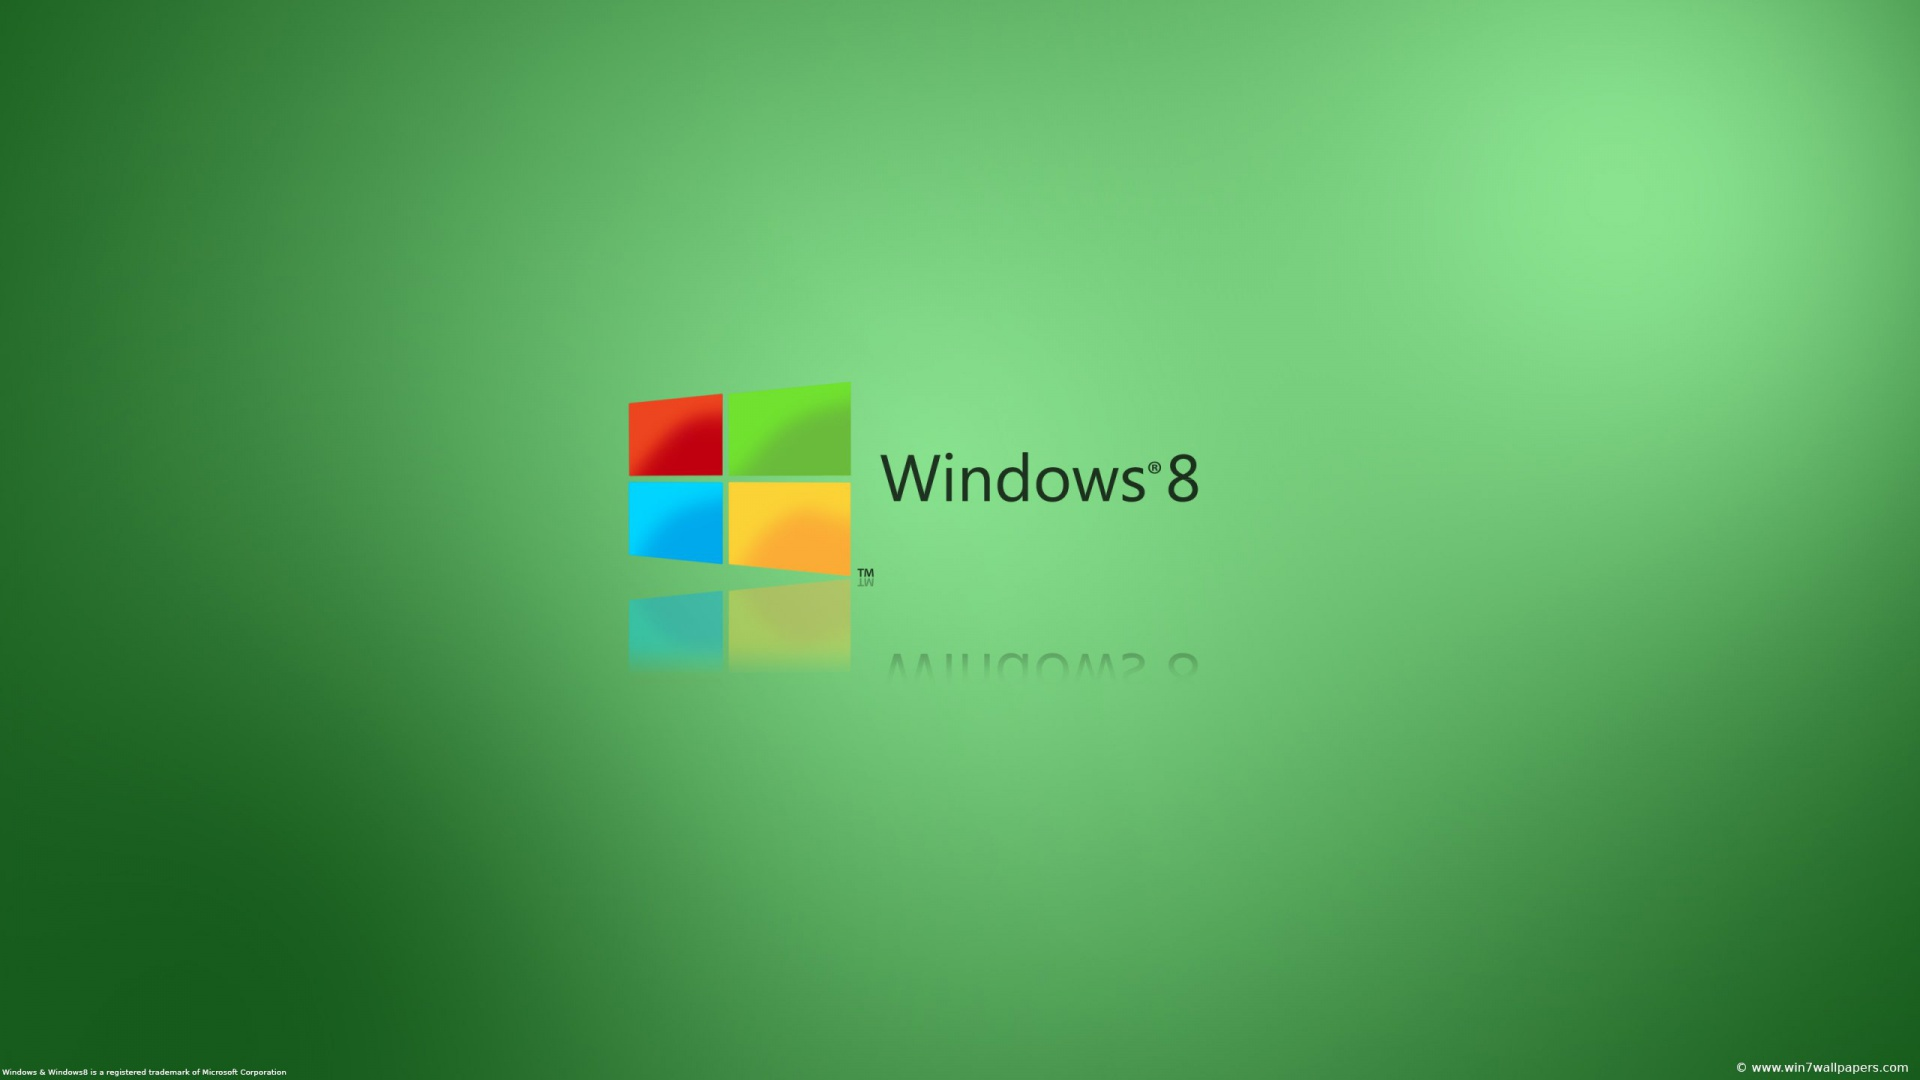 windows 8 full hd wallpaper and background image | 1920x1080 | id:461356